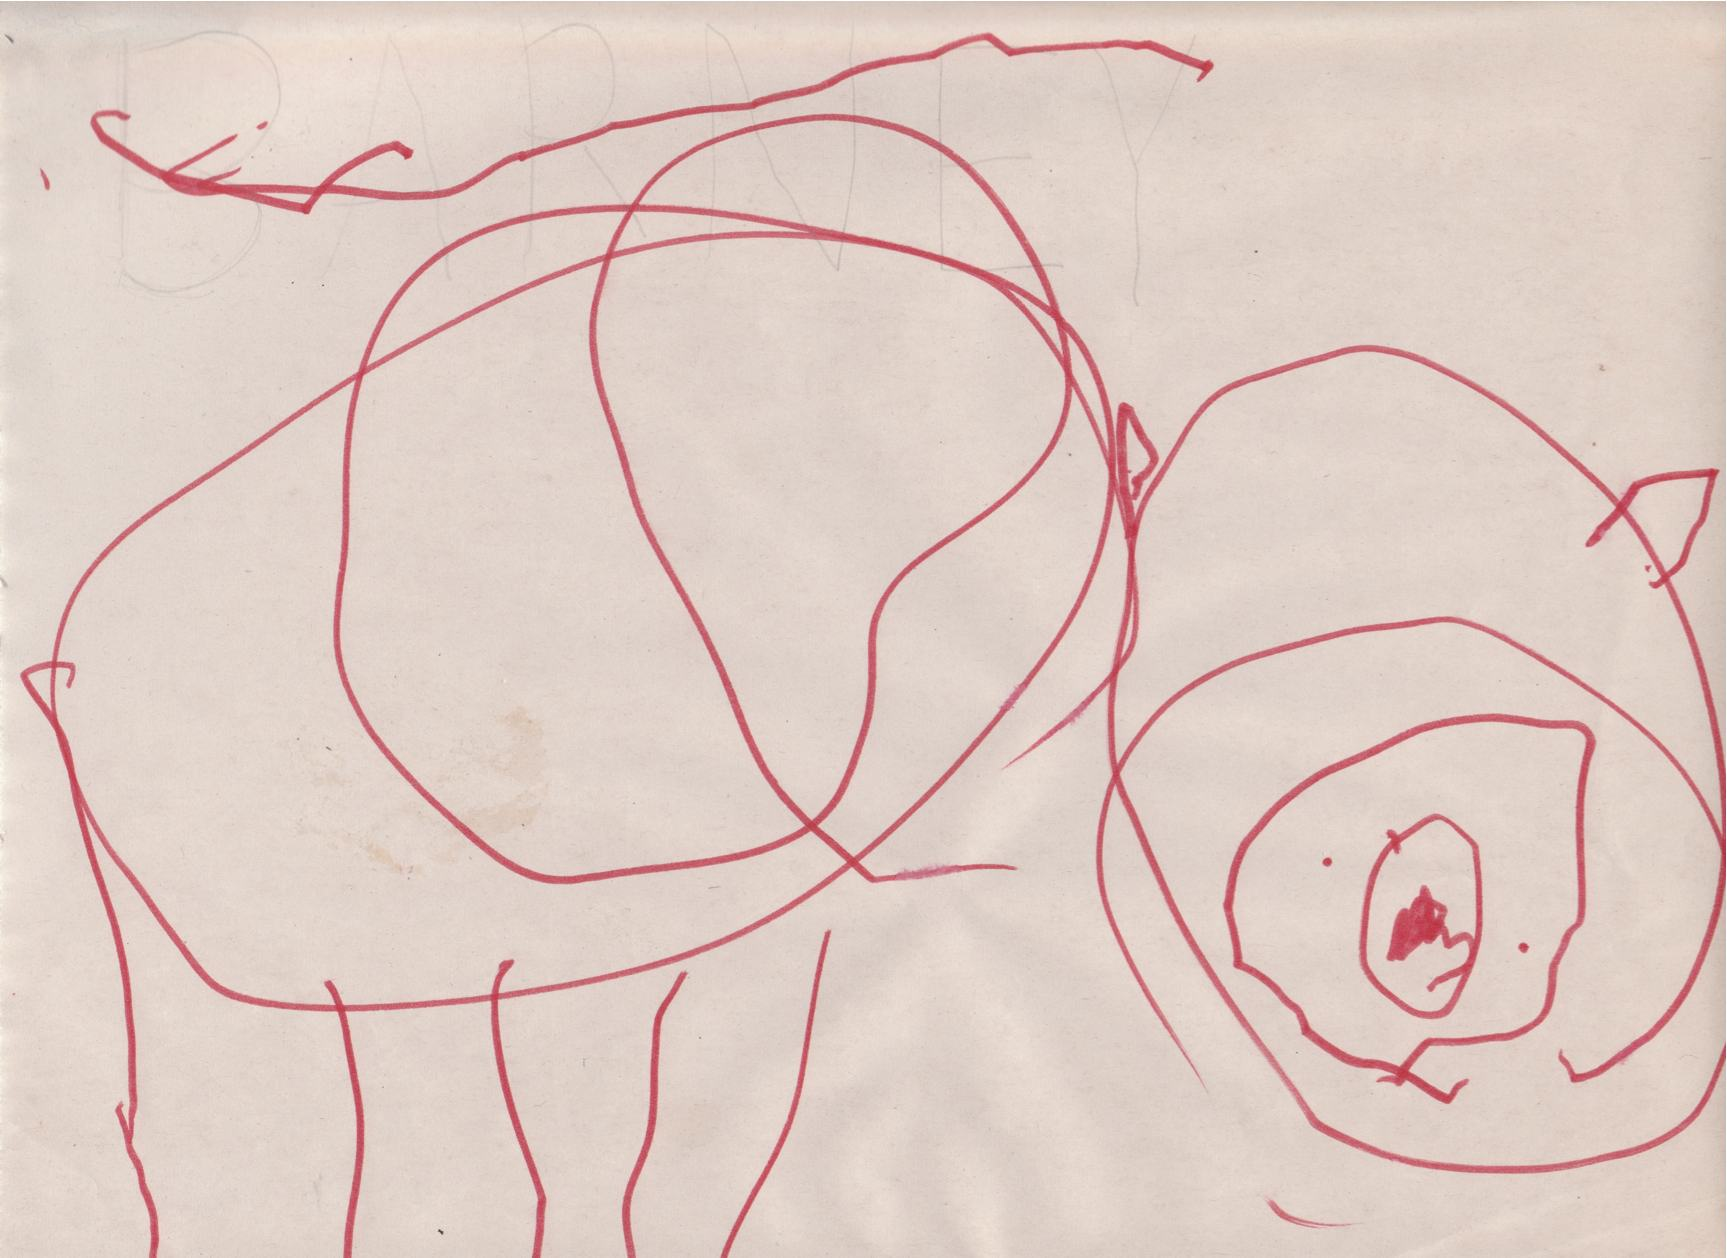 1727x1258 Barney Cora, Age 3.5 Drawing Of Her Grandparents' New Dog. We